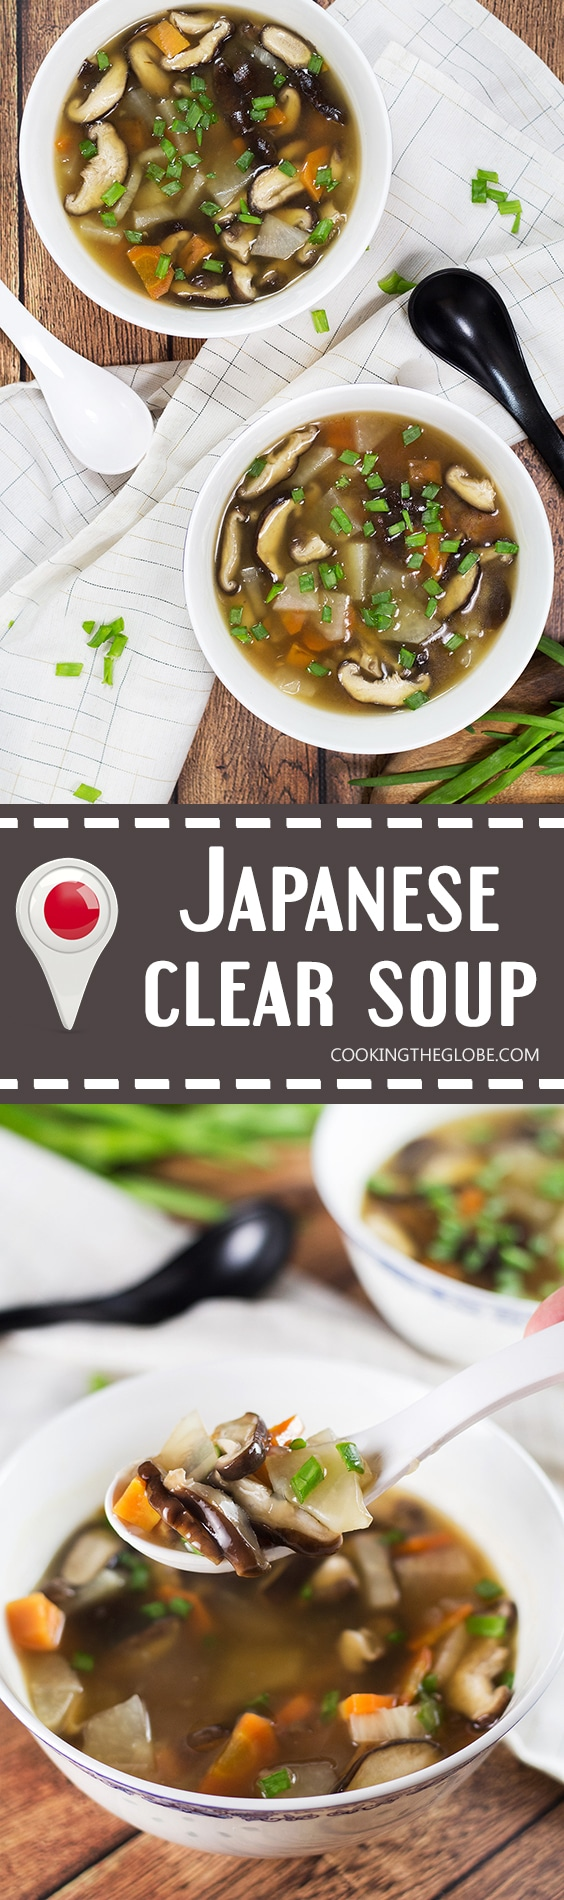 This Japanese Clear Soup uses a flavorful dashi stock as a base and also features shiitake mushrooms and a bunch of veggies! A perfect appetizer or a light lunch! | cookingtheglobe.com